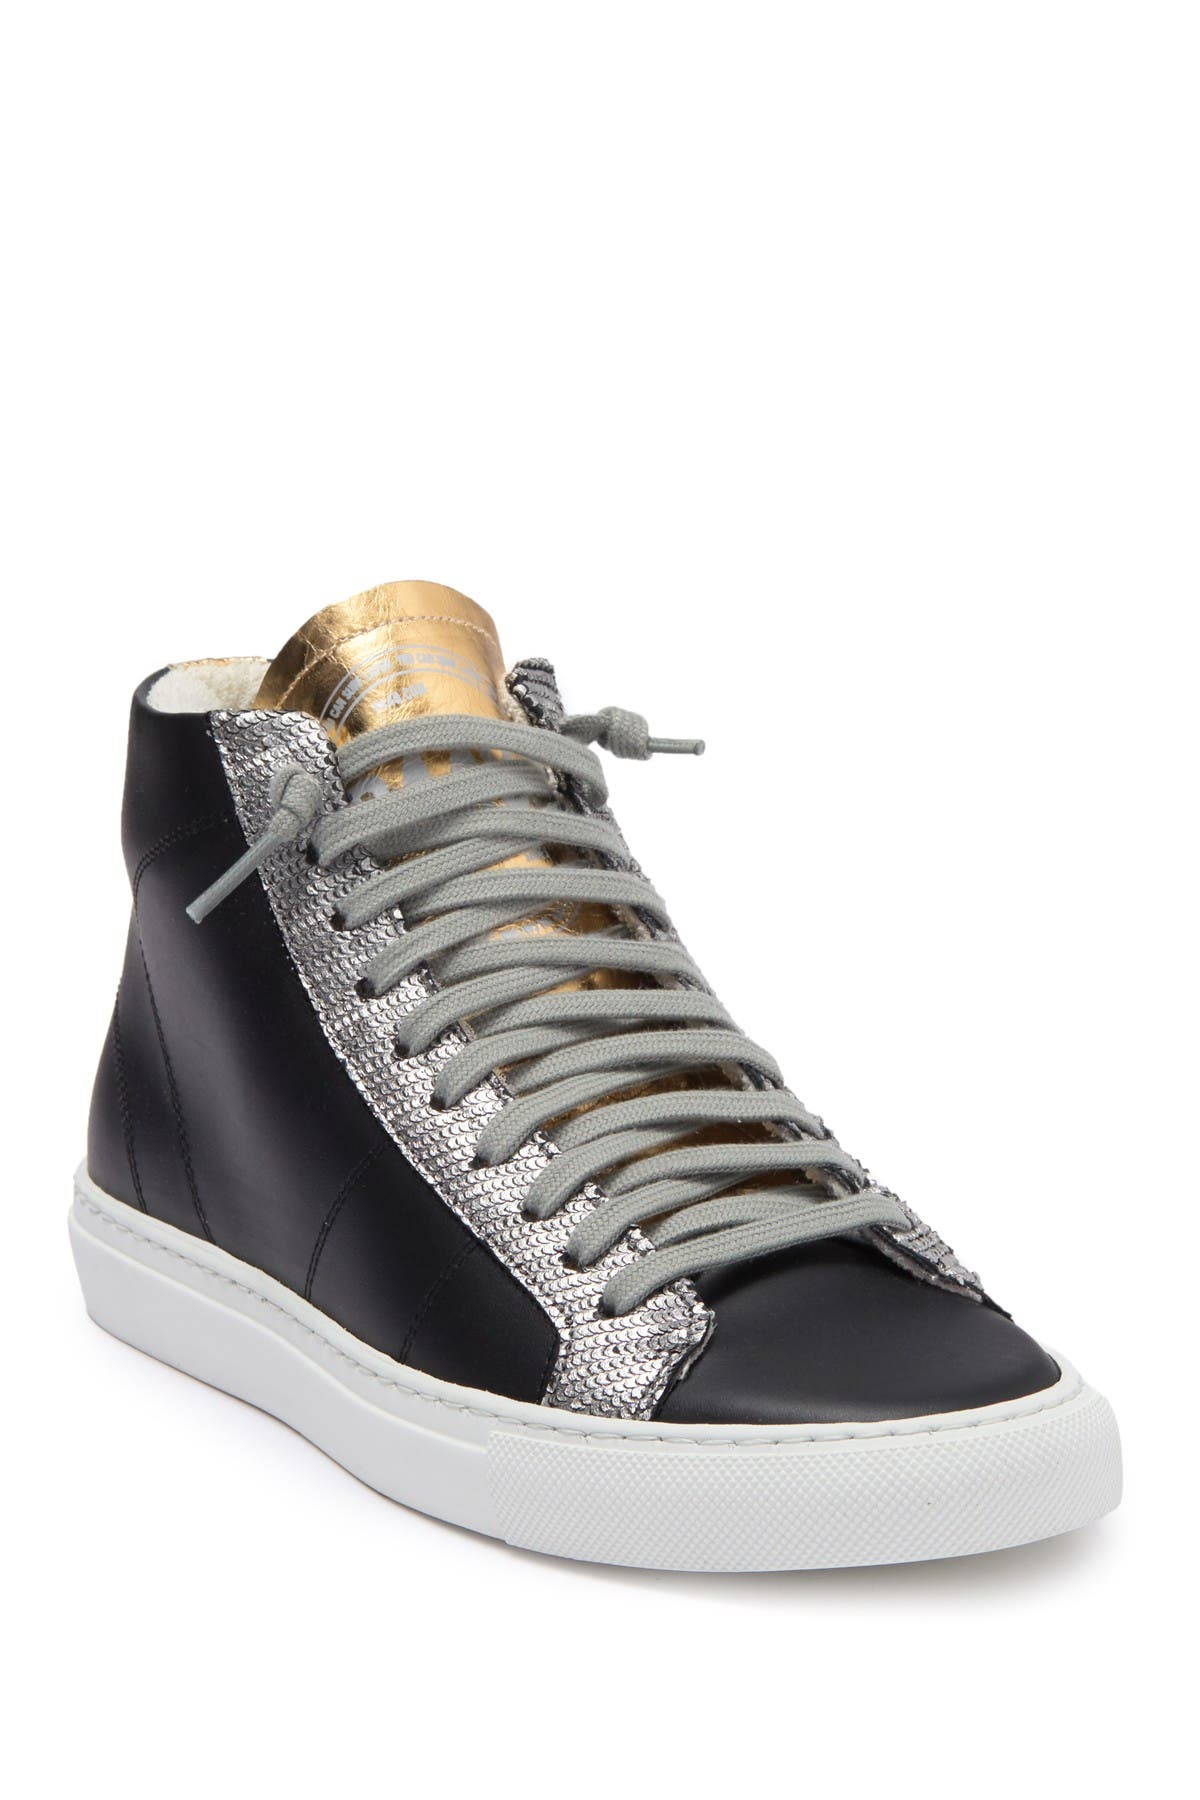 P448 | Star Leather High Top Sneaker